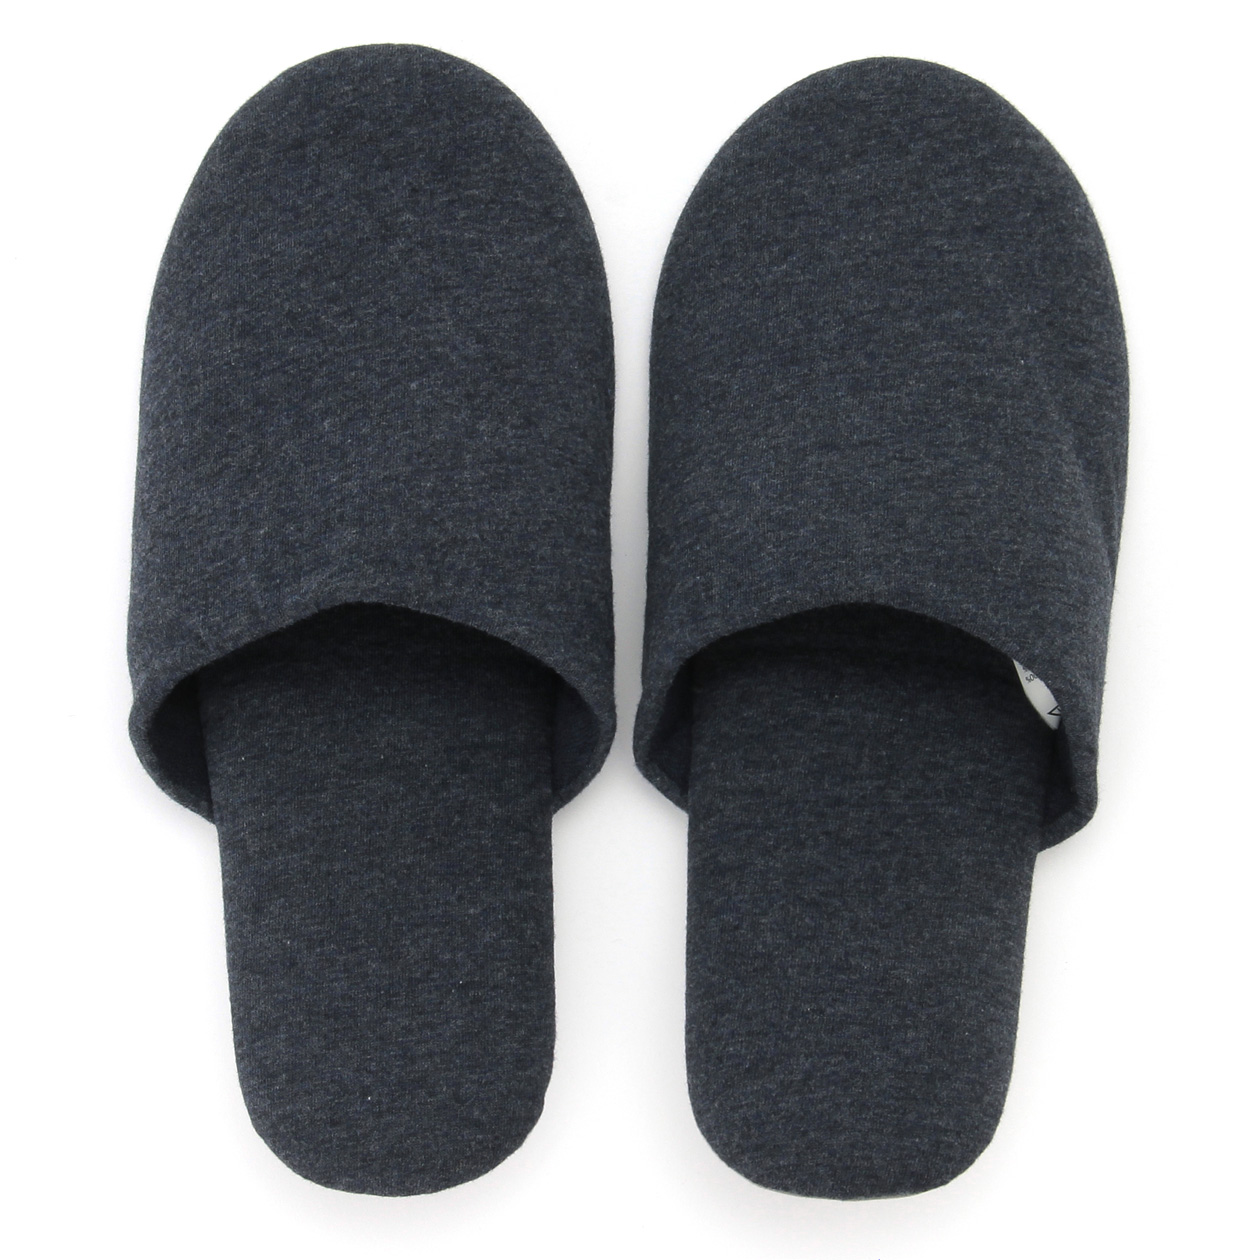 Travel Slippers M Navy